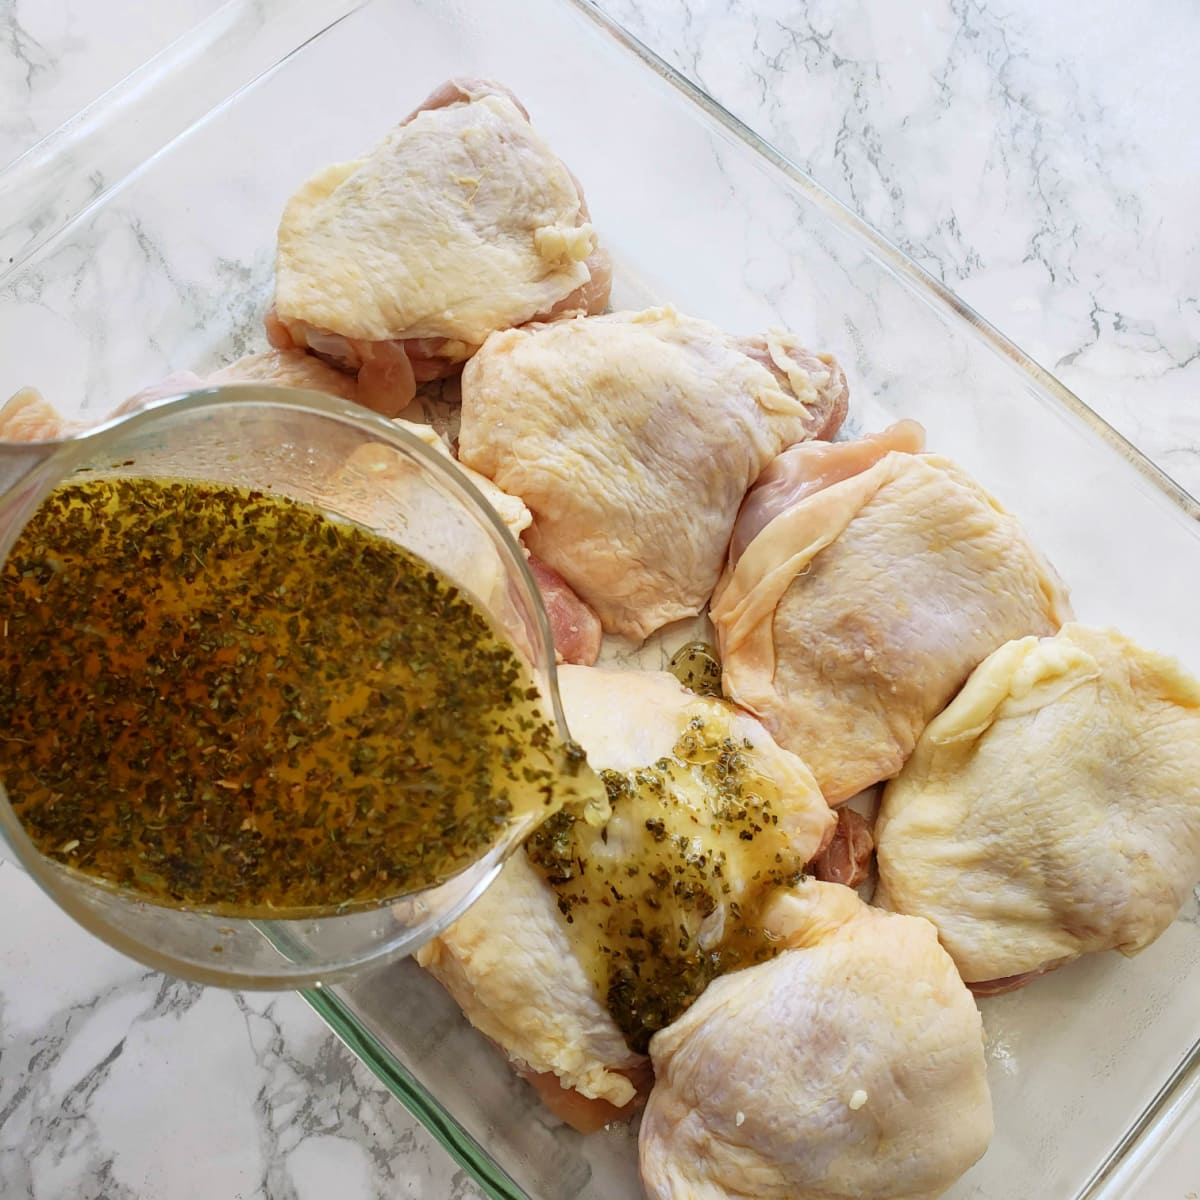 8 chicken thighs in a baking dish with marinade pouring over, set on a white marble counter